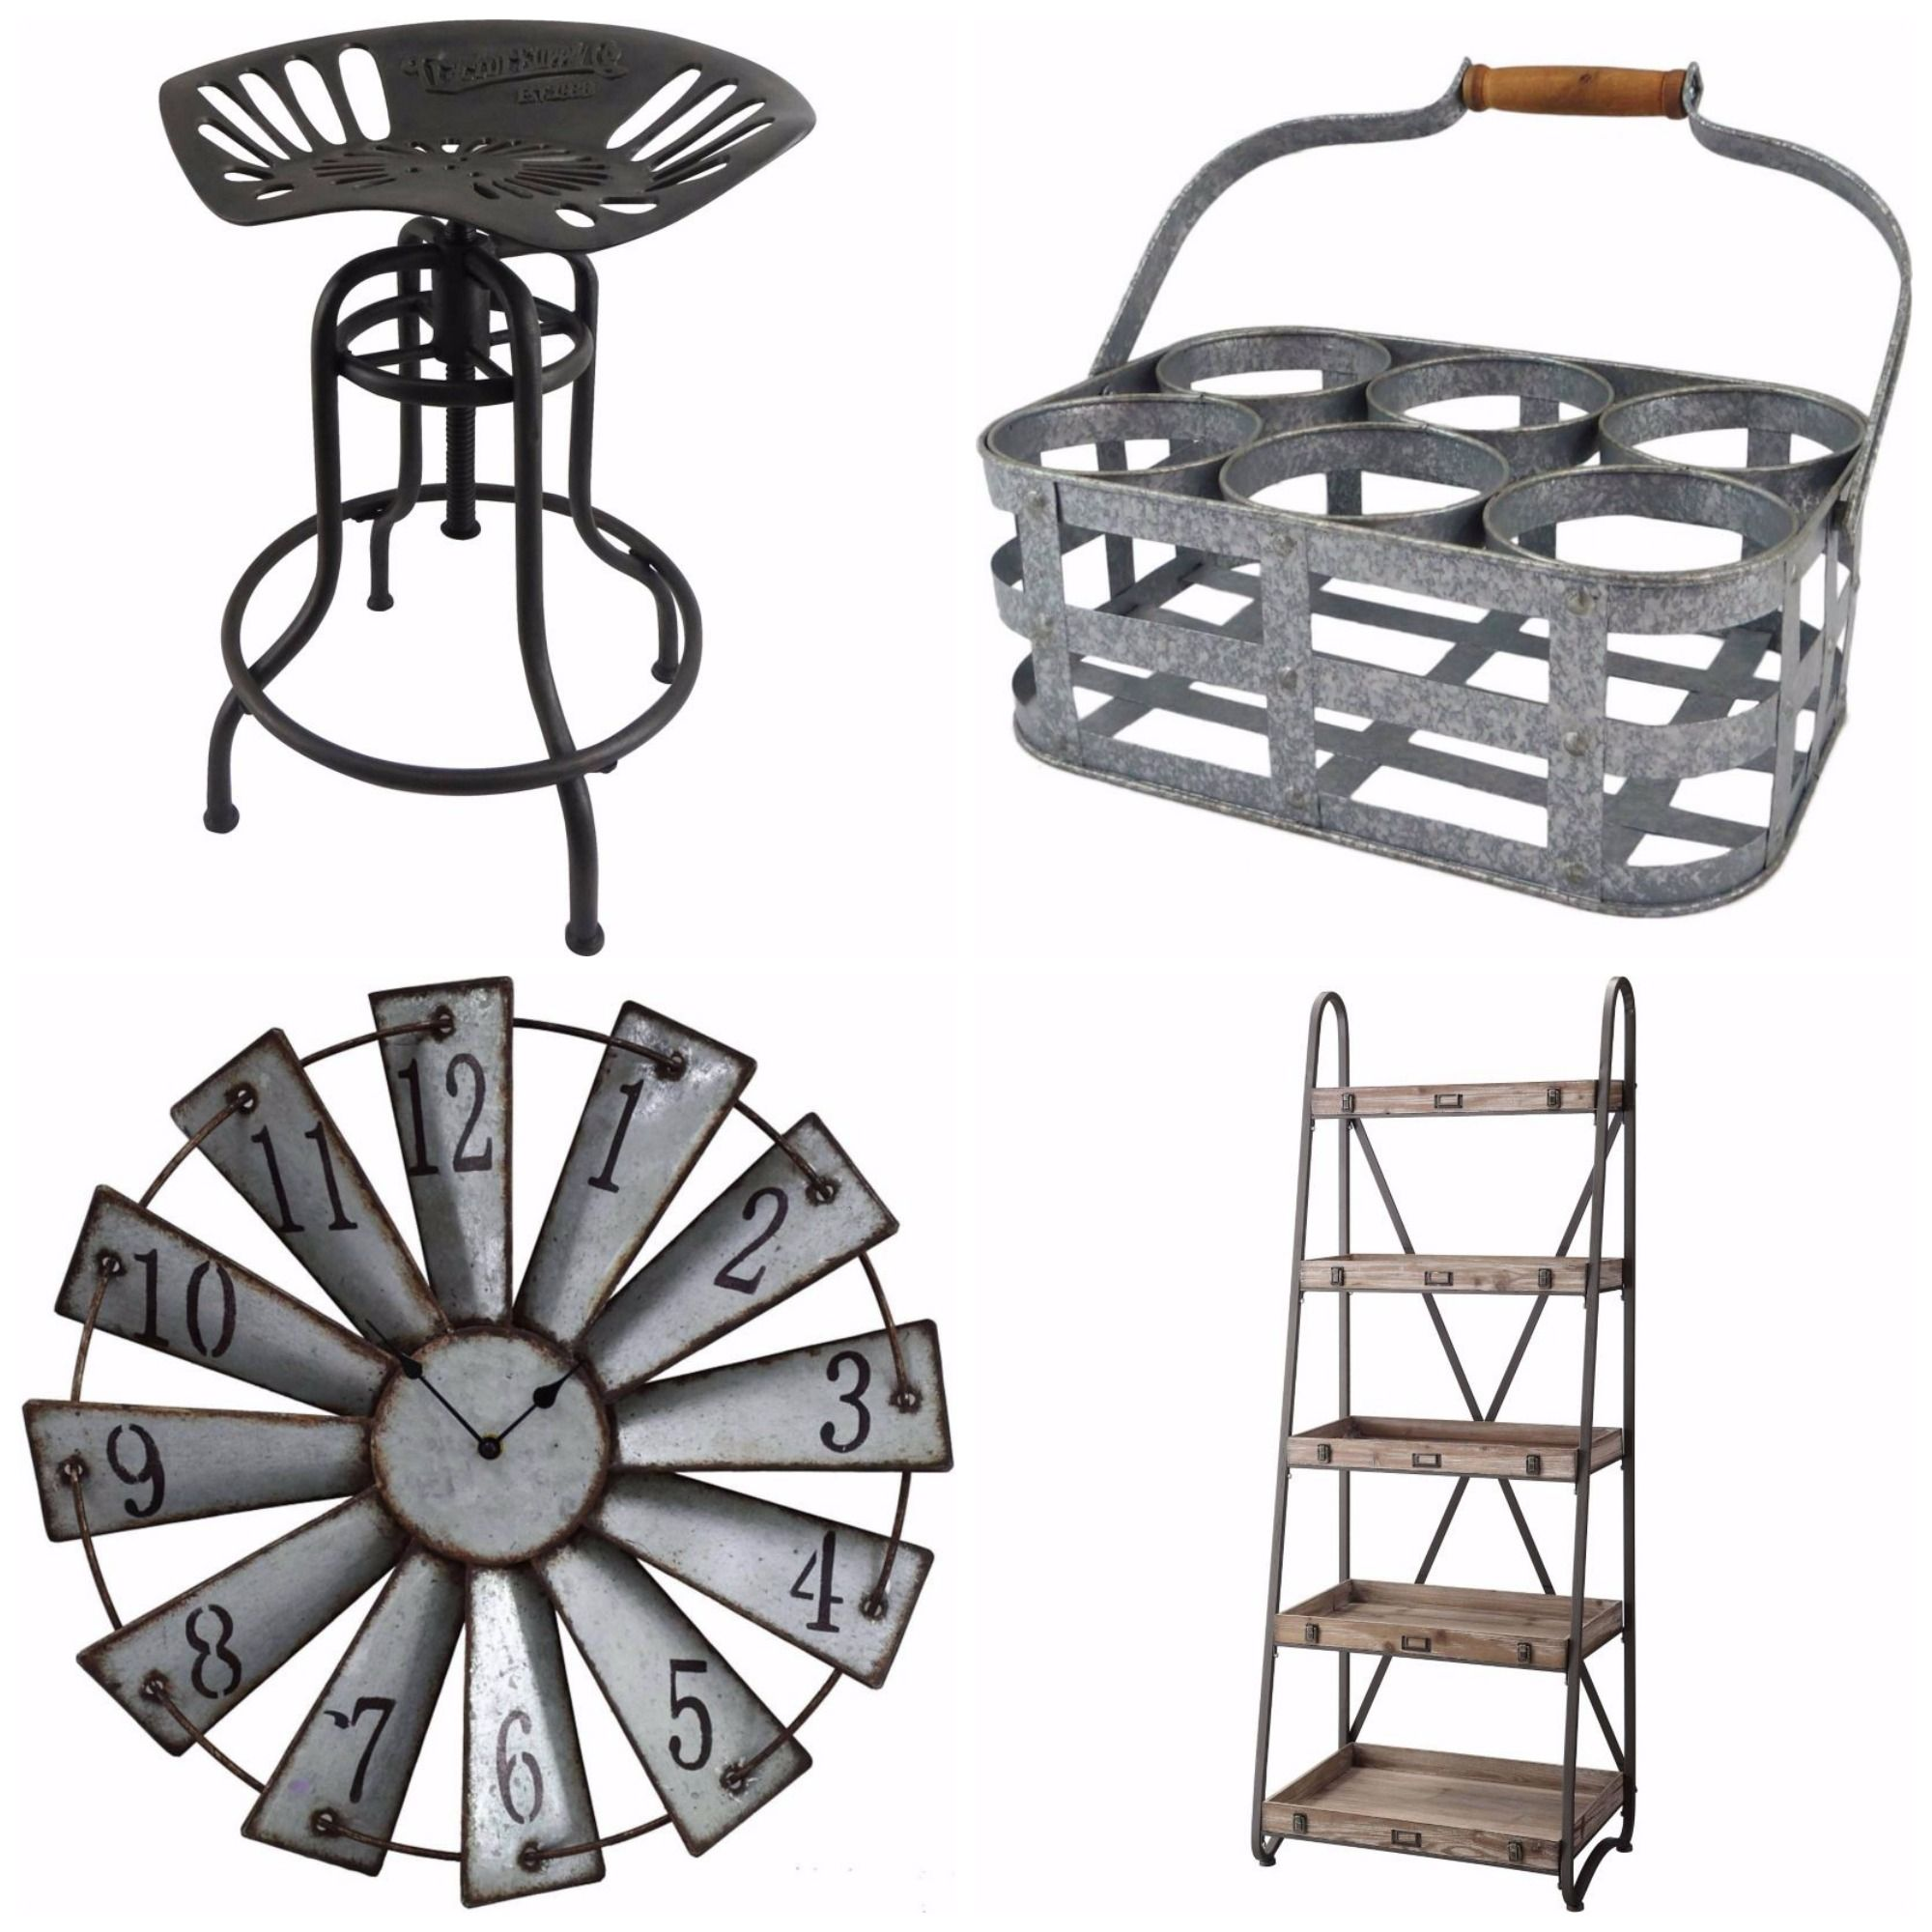 Where To Buy Affordable Industrial Farmhouse Decor